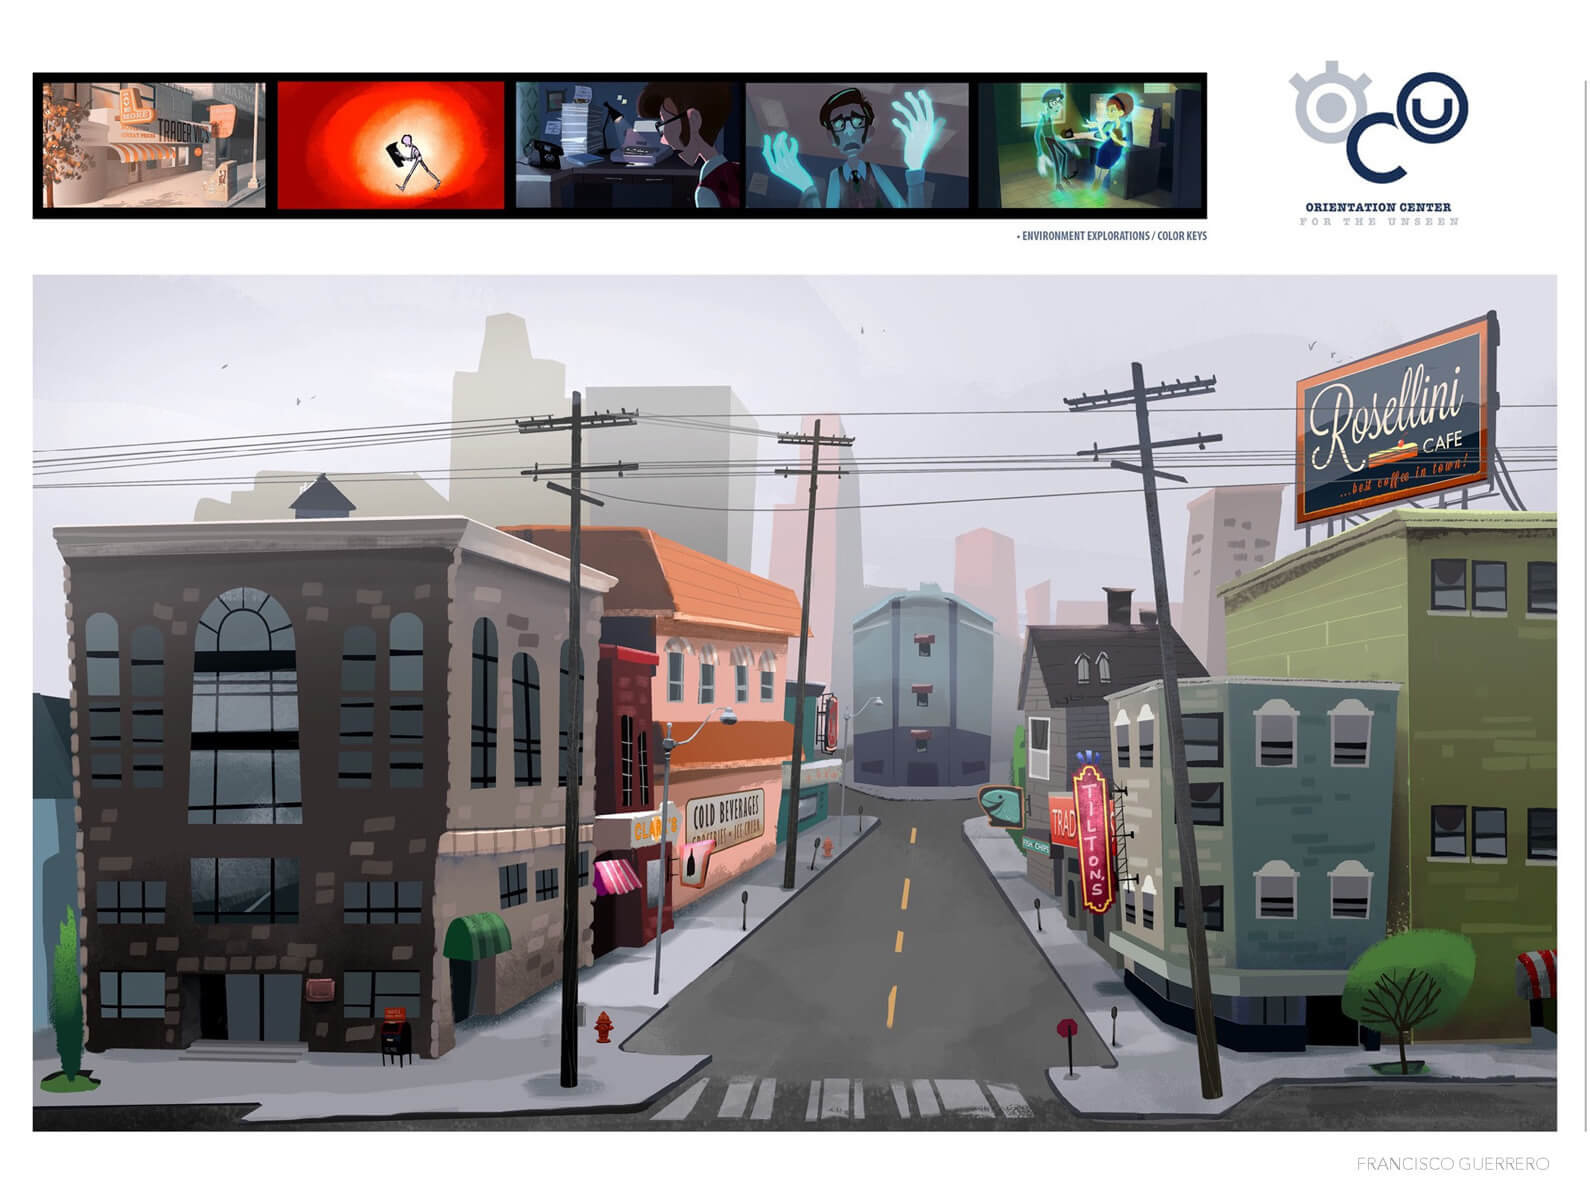 2D Color environment exploration and color key for the street setting in Orientation Center for the Unseen